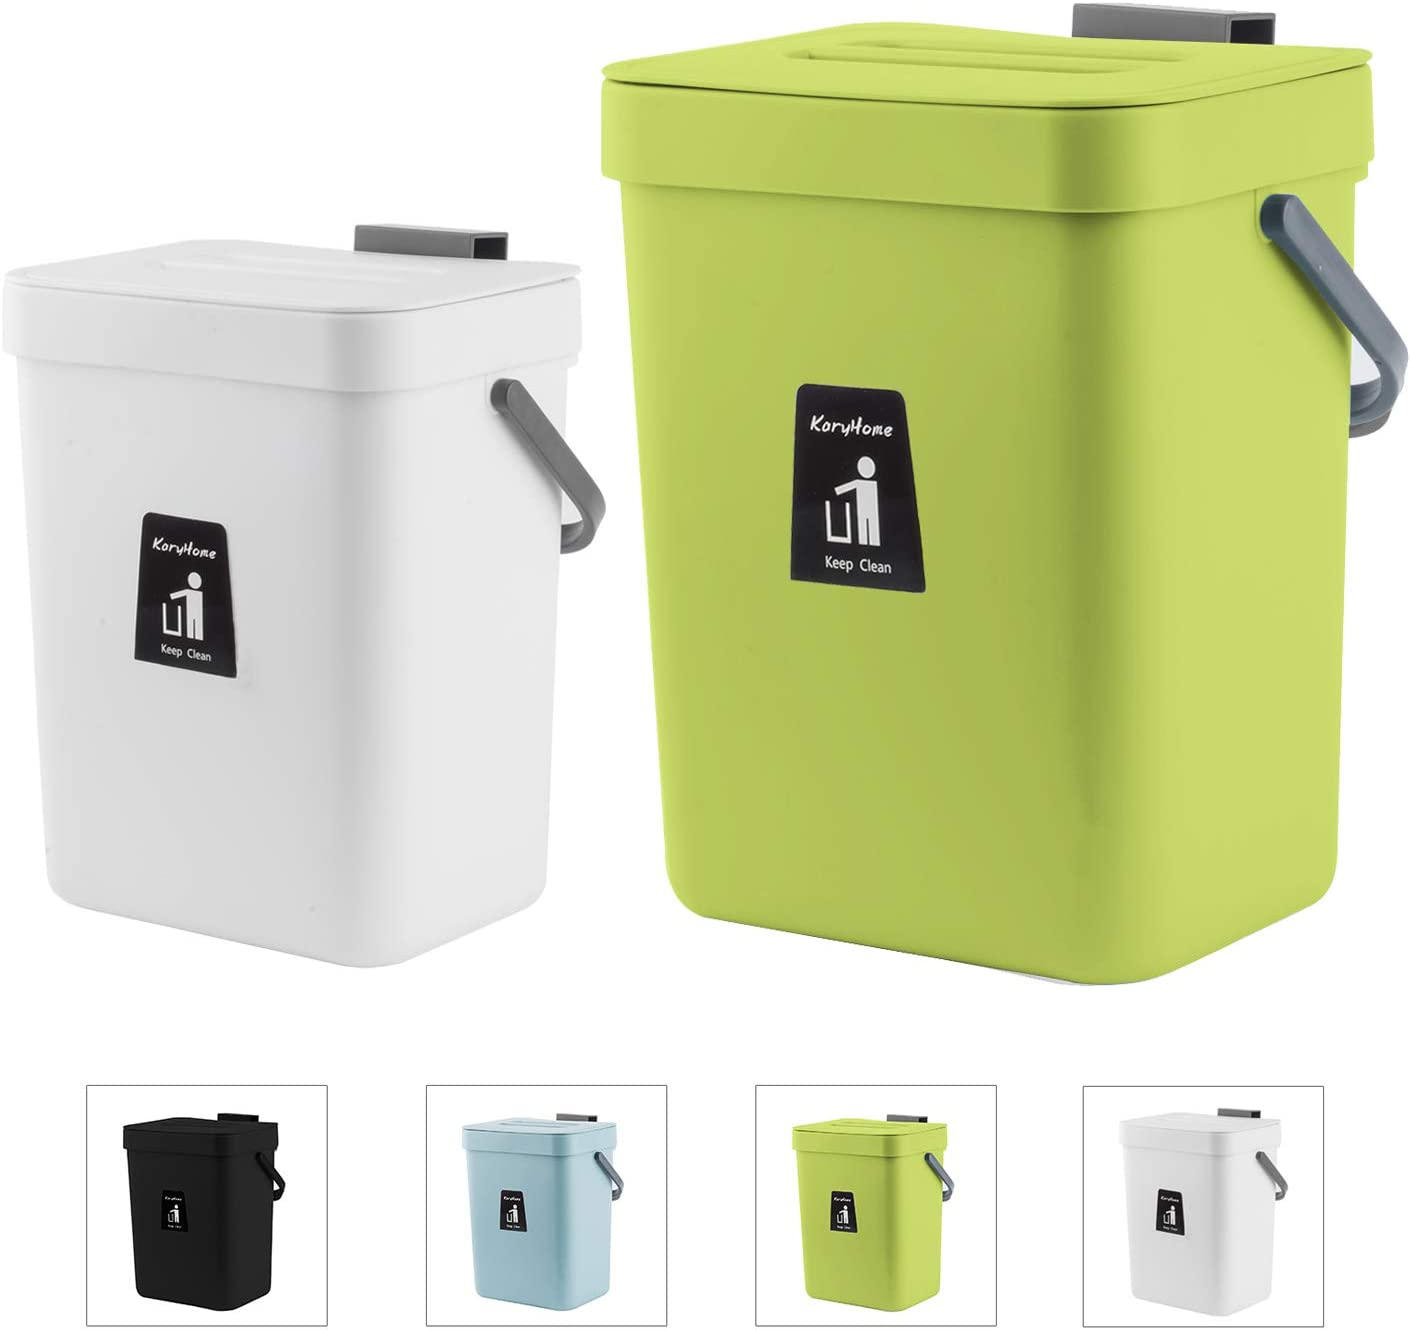 KaryHome Hanging Small Trash Can with Lid Under Sink for Kitchen,Food Waste Bin,Kitchen Compost Bin for Counter Top,2 Pack,Green and White